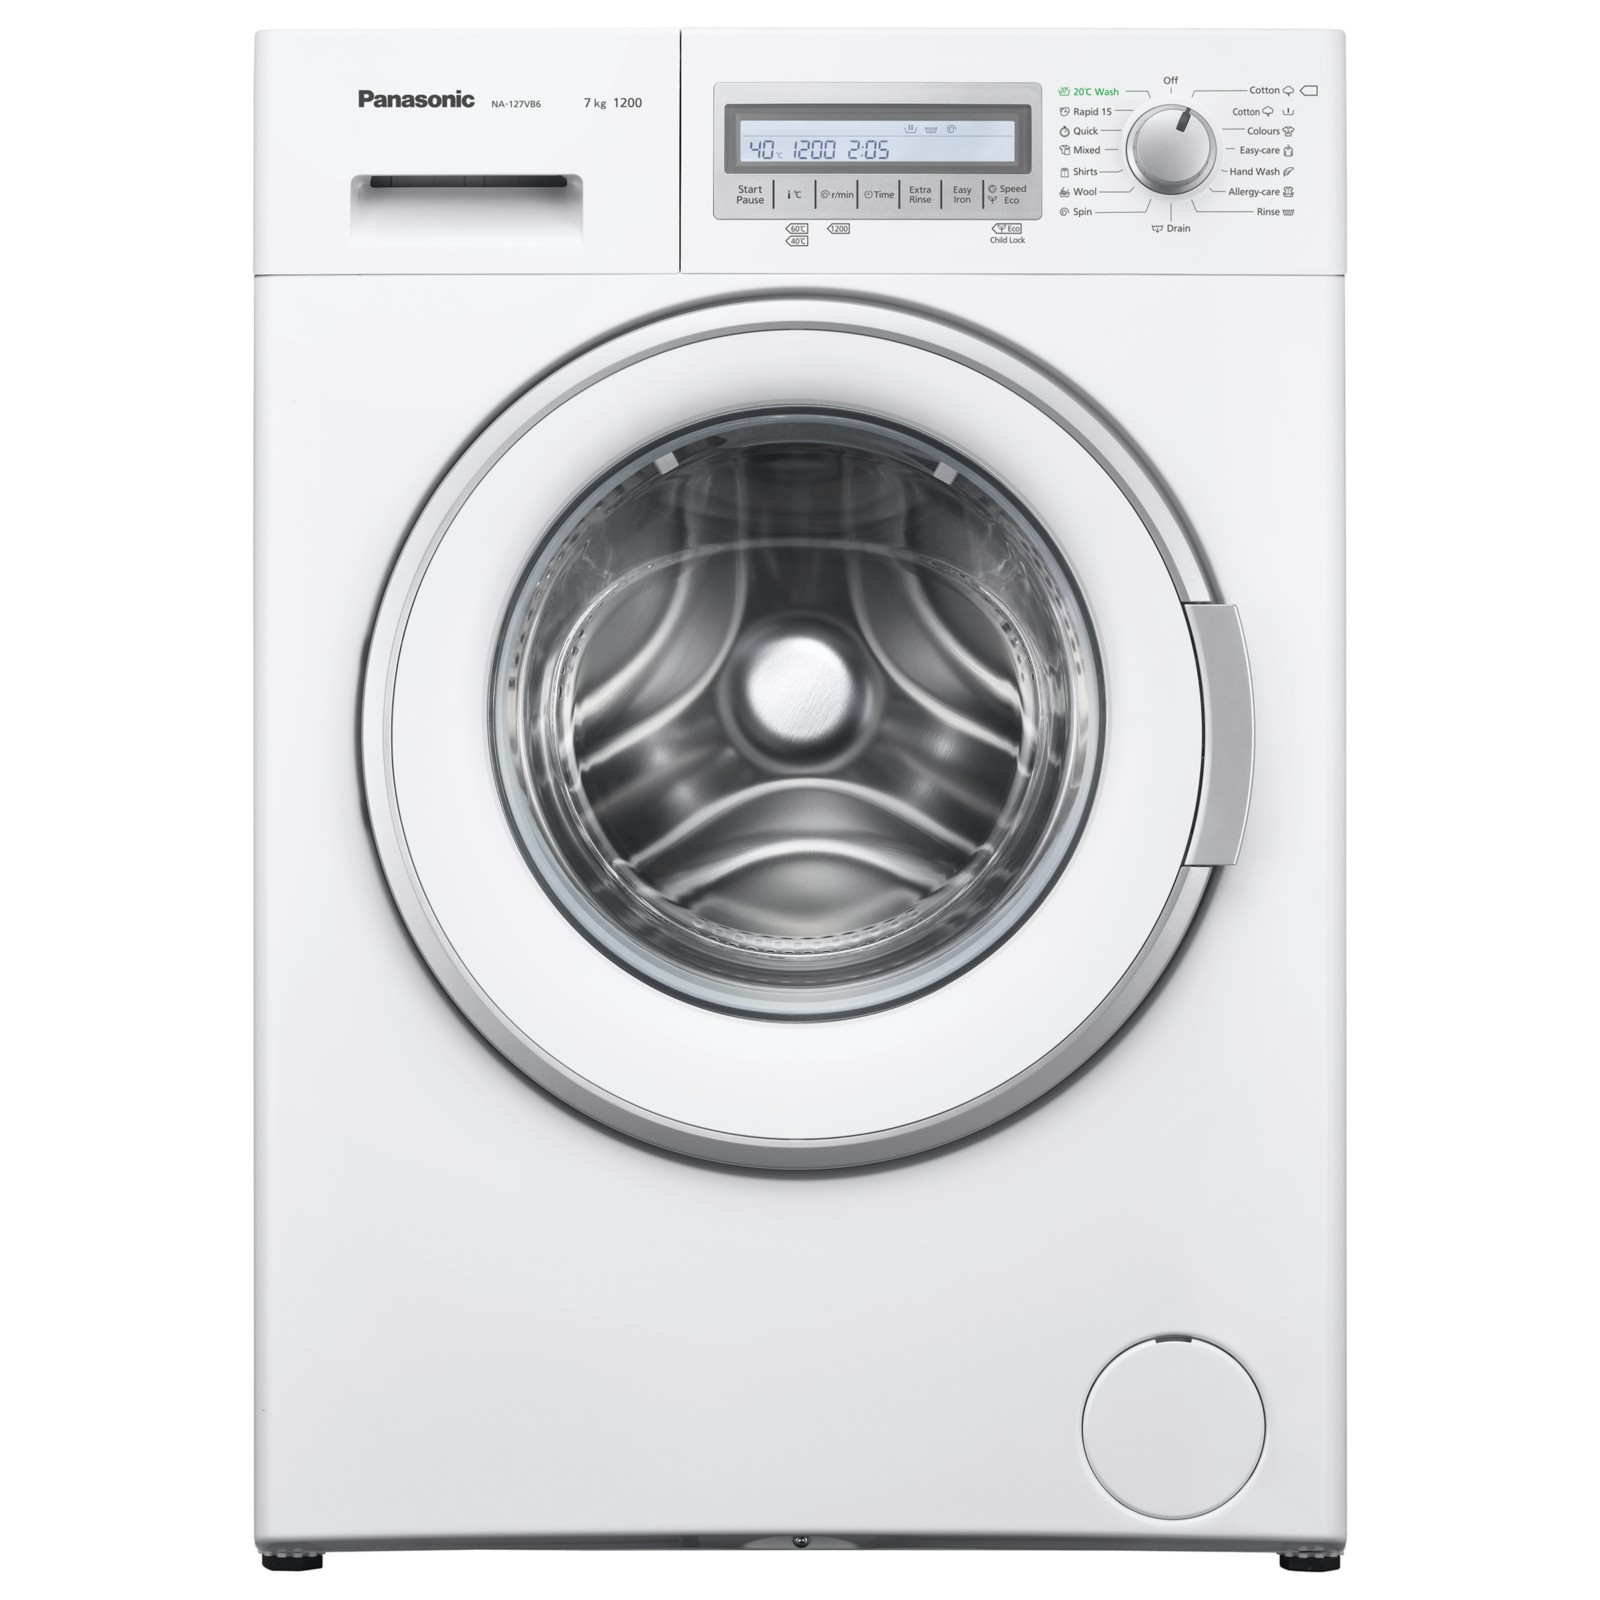 Panasonic NA-127VB6WGB Freestanding Washing Machine